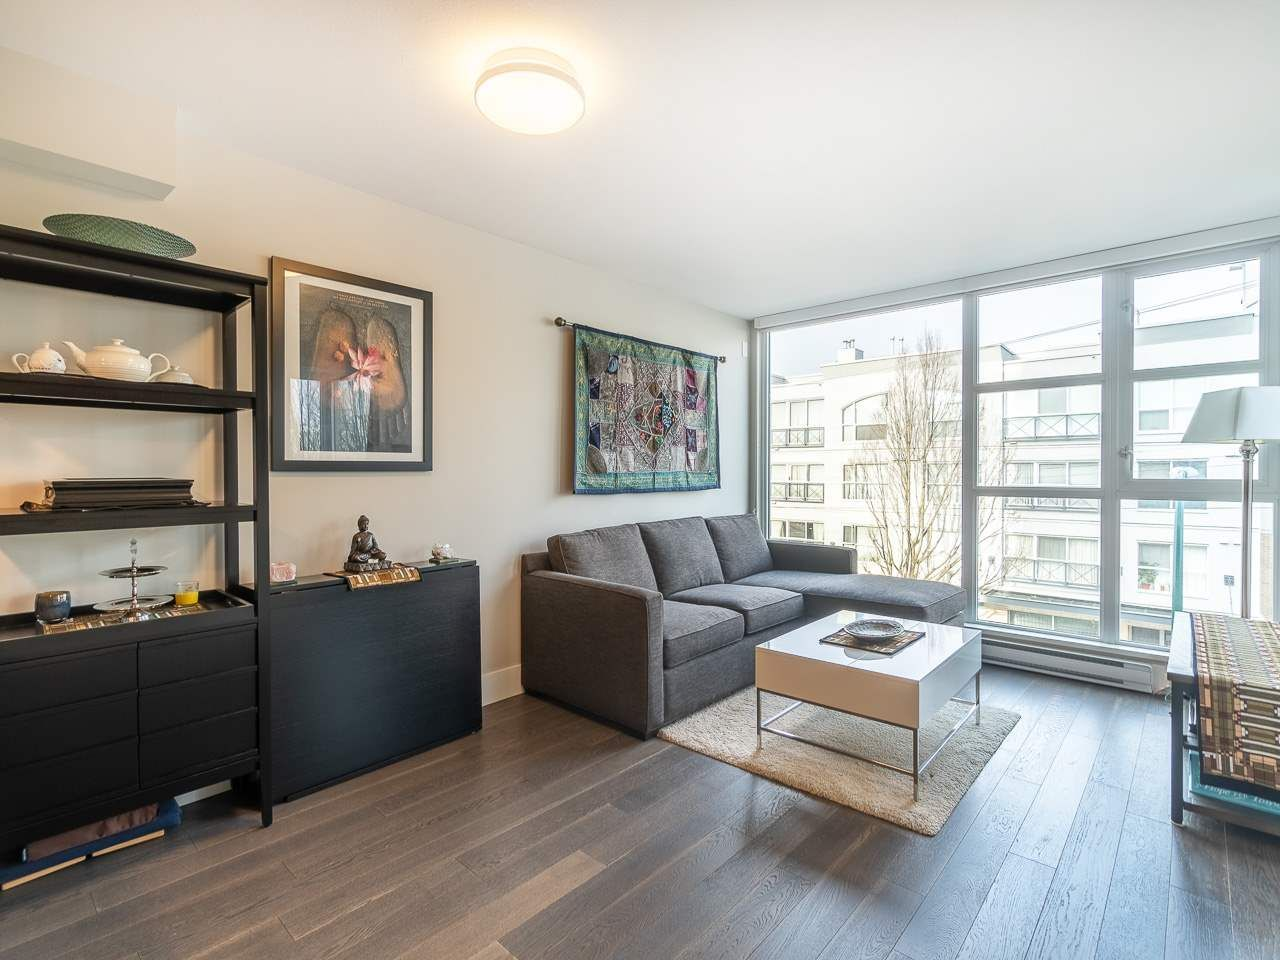 """Main Photo: 303 538 W 7TH Avenue in Vancouver: Fairview VW Condo for sale in """"CAMBIE +7"""" (Vancouver West)  : MLS®# R2332331"""